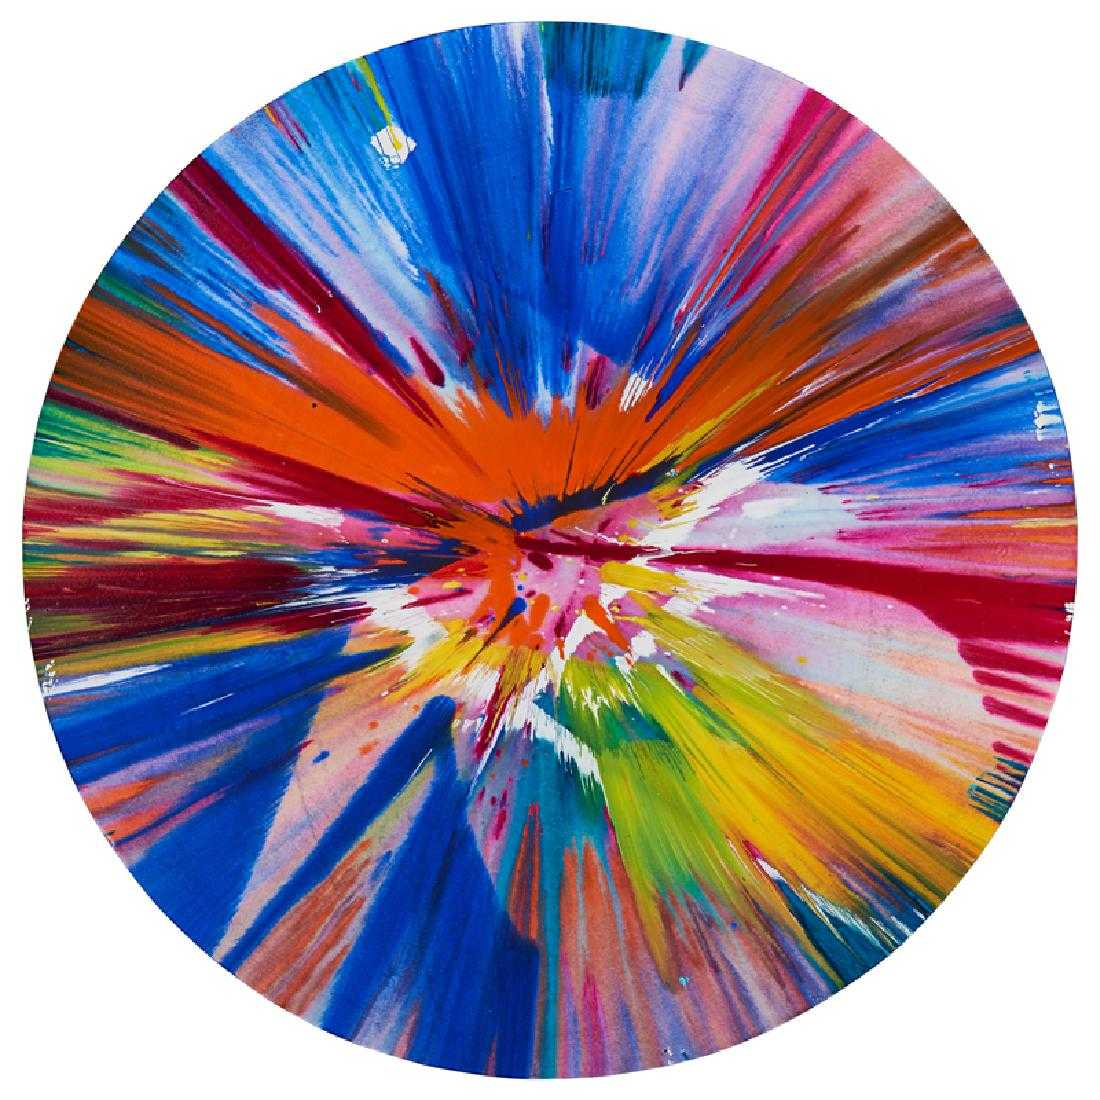 Damien Hirst, Circle Spin Painting, Acrylic on paper, 52 diameter, 22,000$